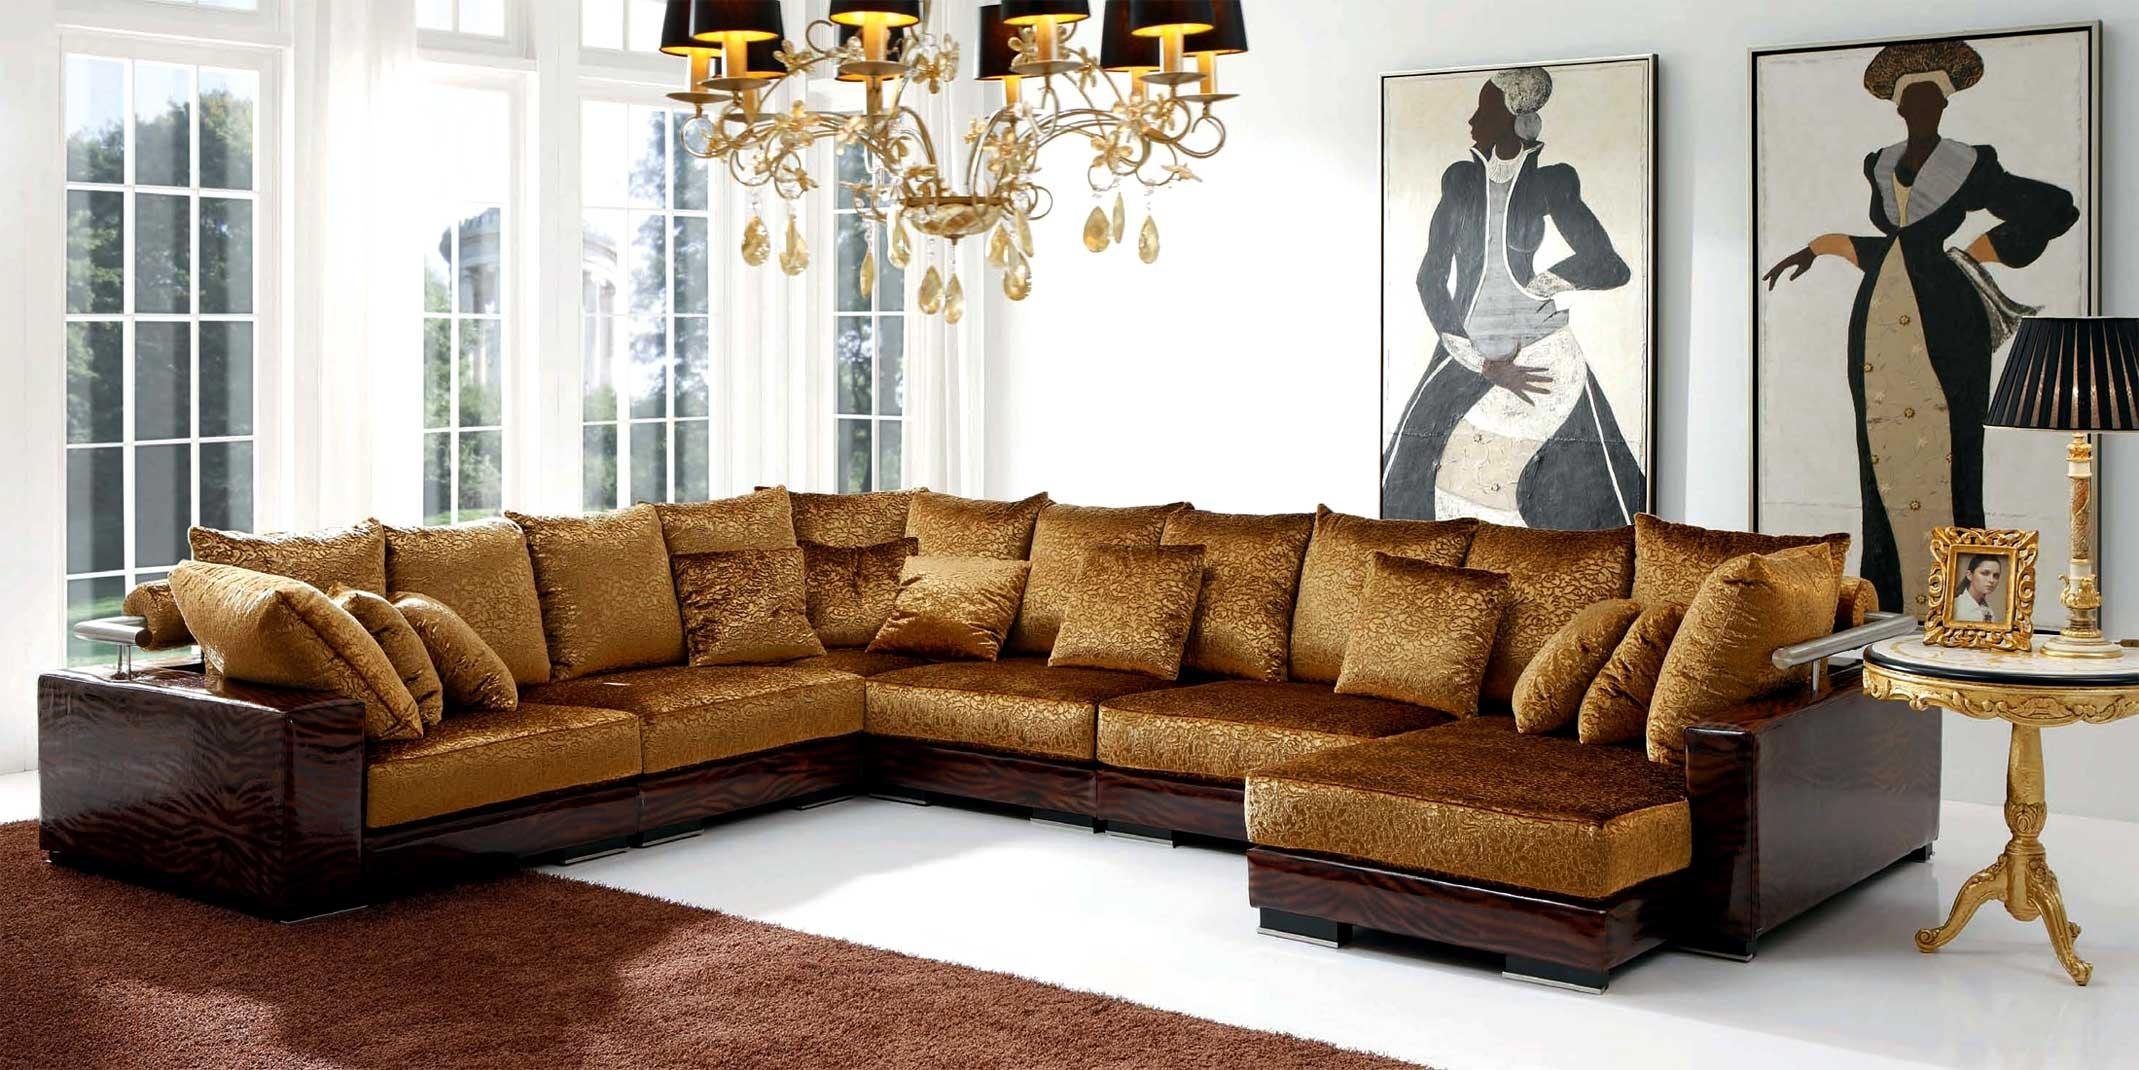 Expensive Sectional Sofas – Leather Sectional Sofa Intended For Gold Sectional Sofa (Image 5 of 15)